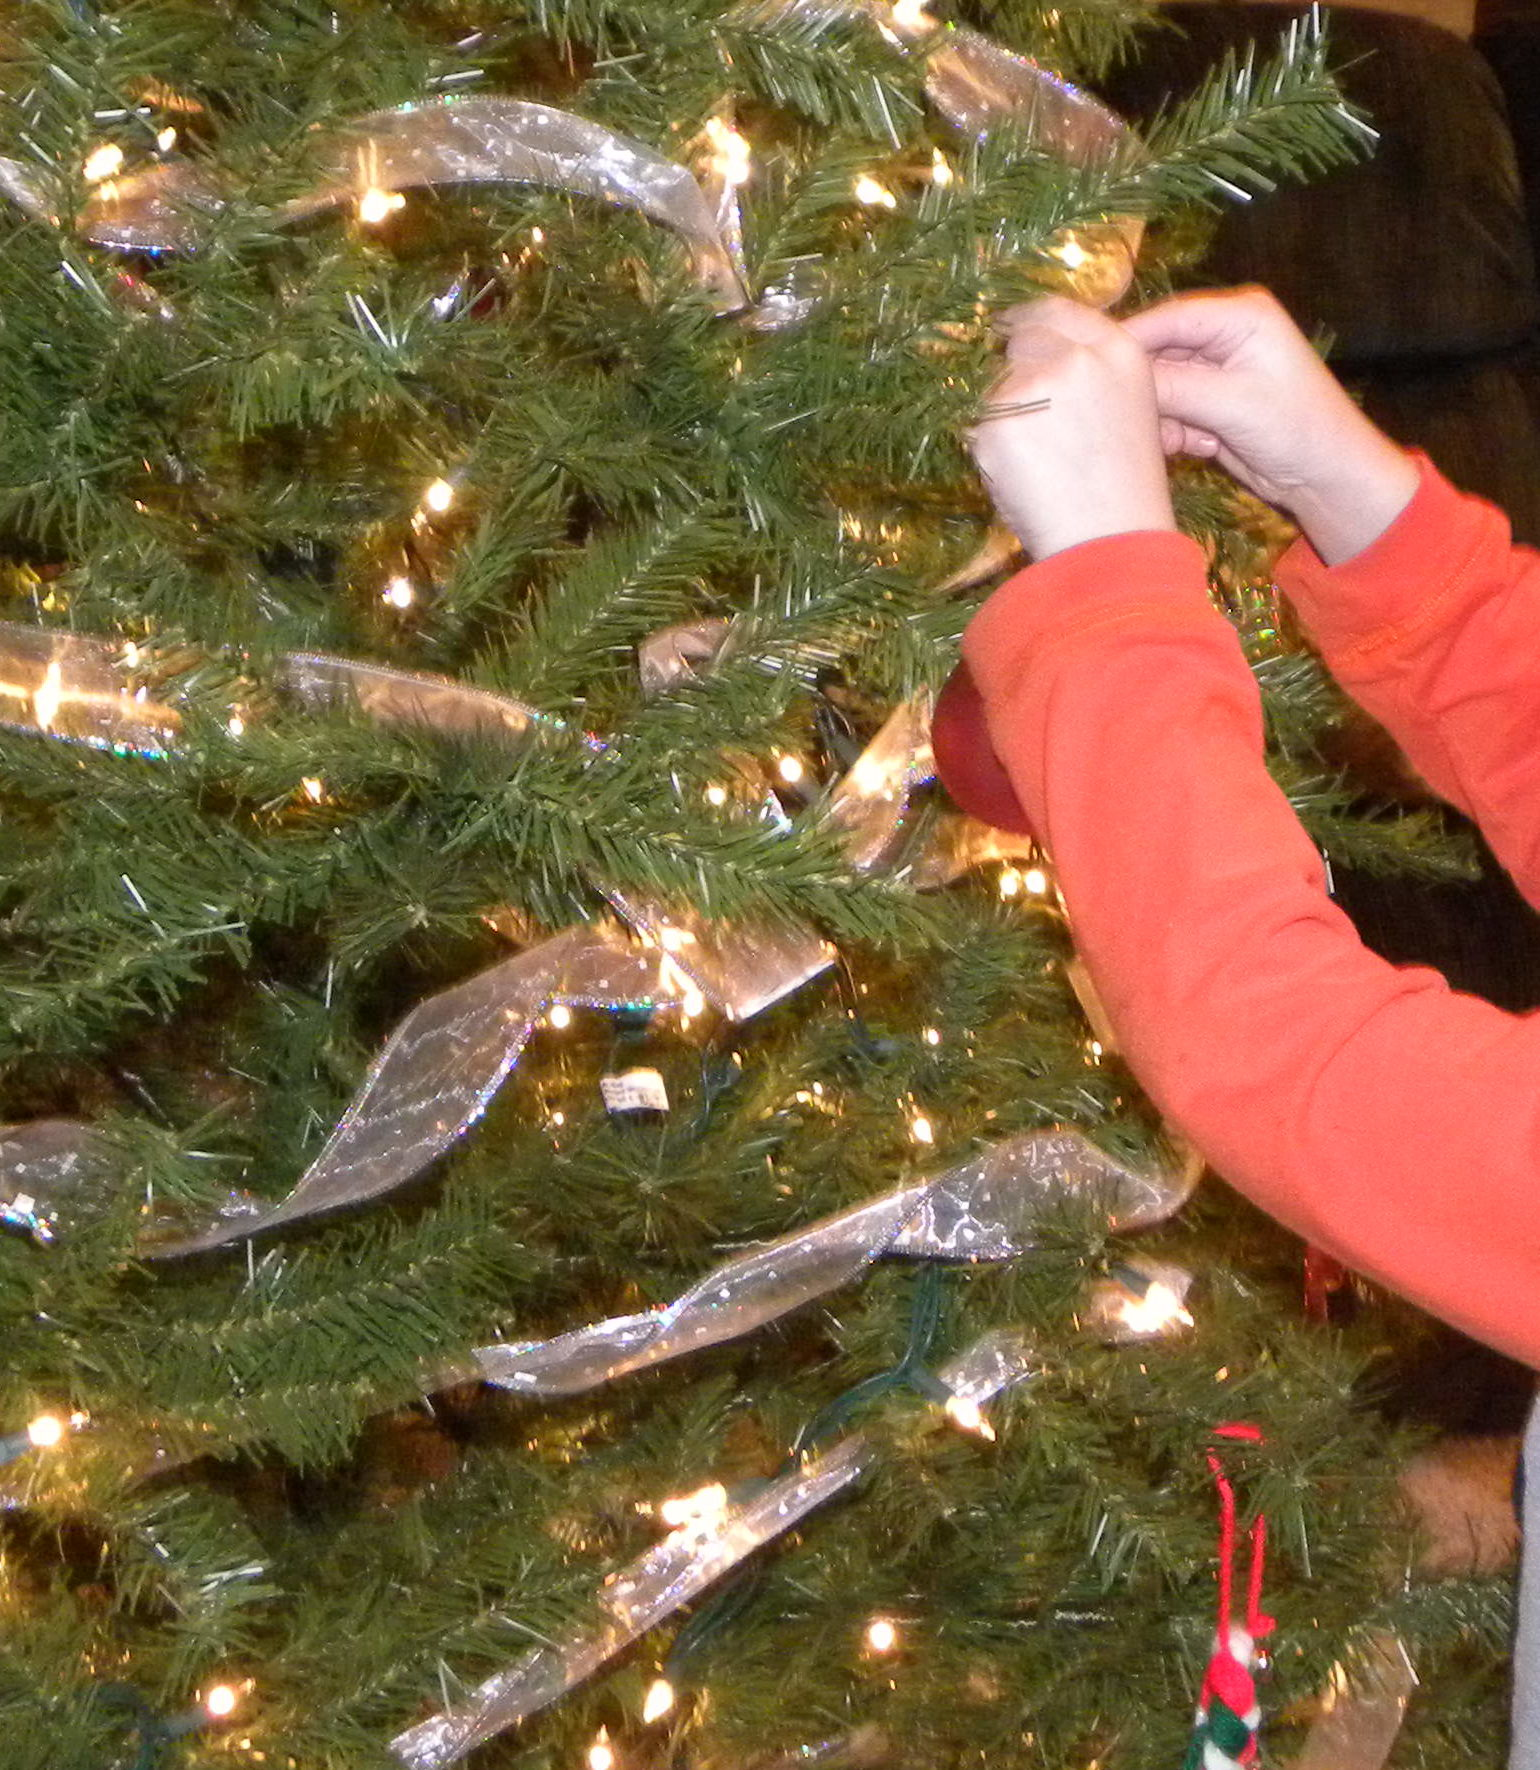 Decorating the Christmas tree. parenting in faith. God at work in our lives.